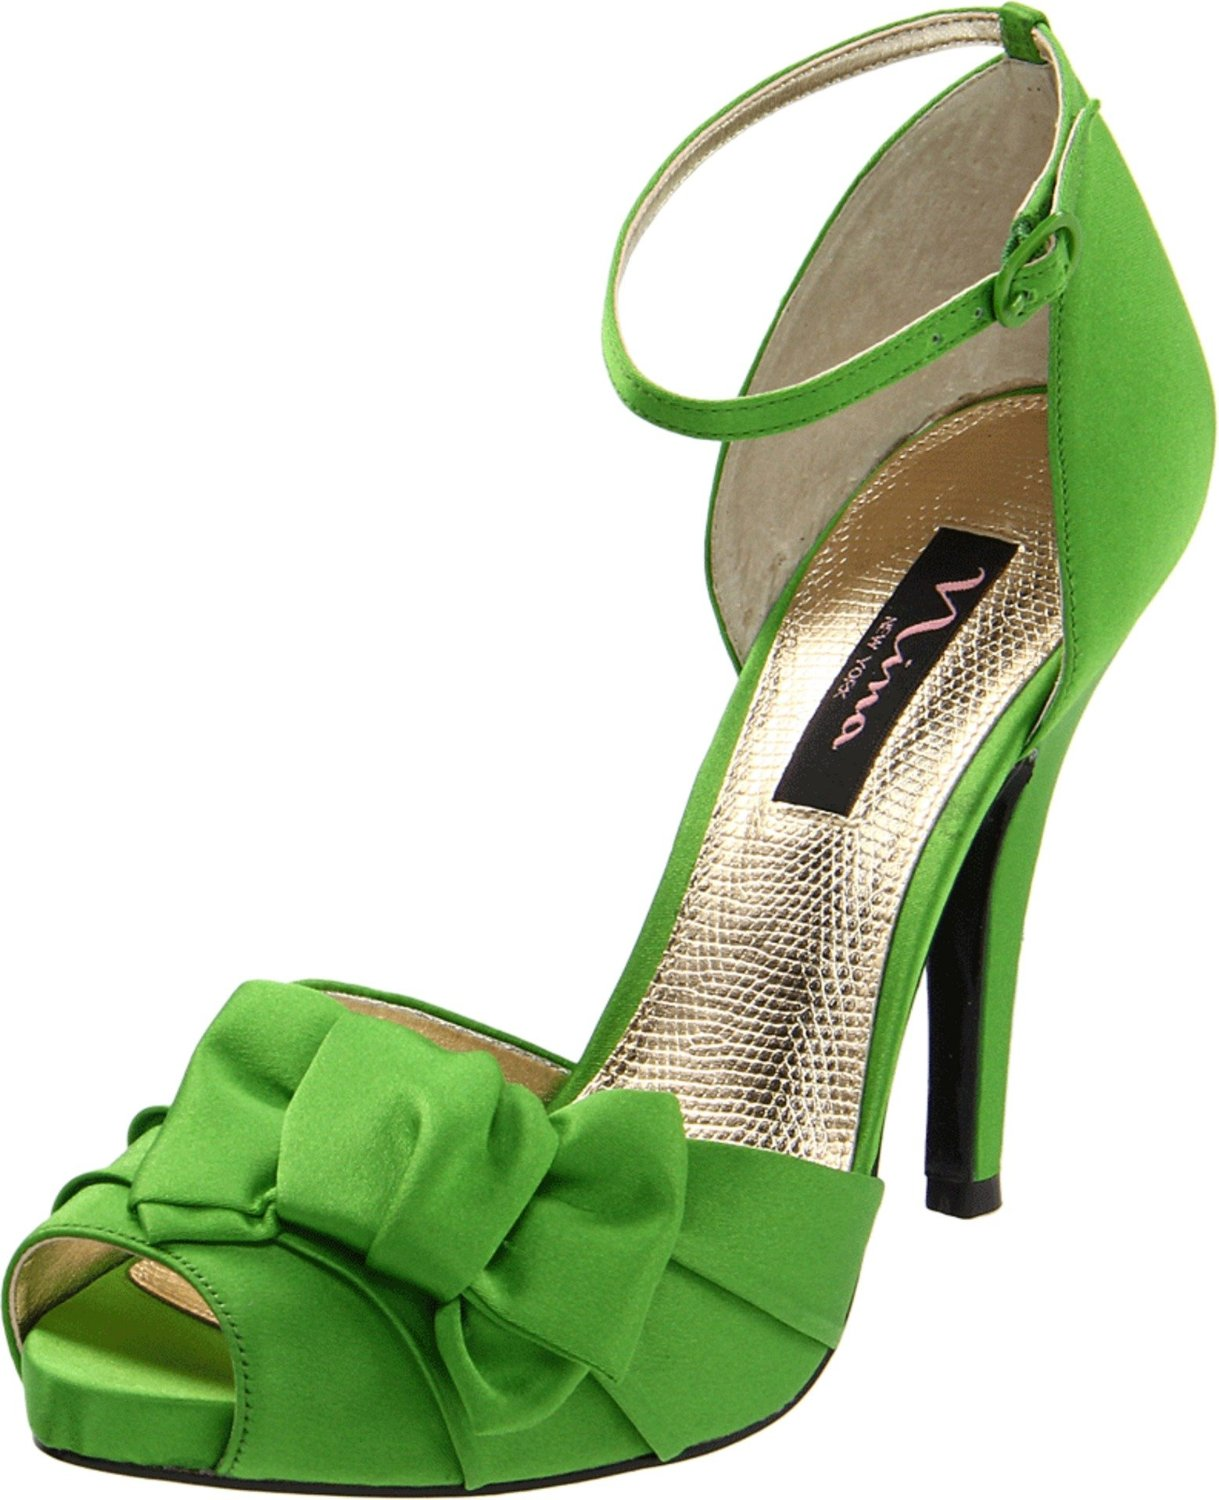 Find great deals on eBay for green heels and green heels size 6. Shop with confidence.